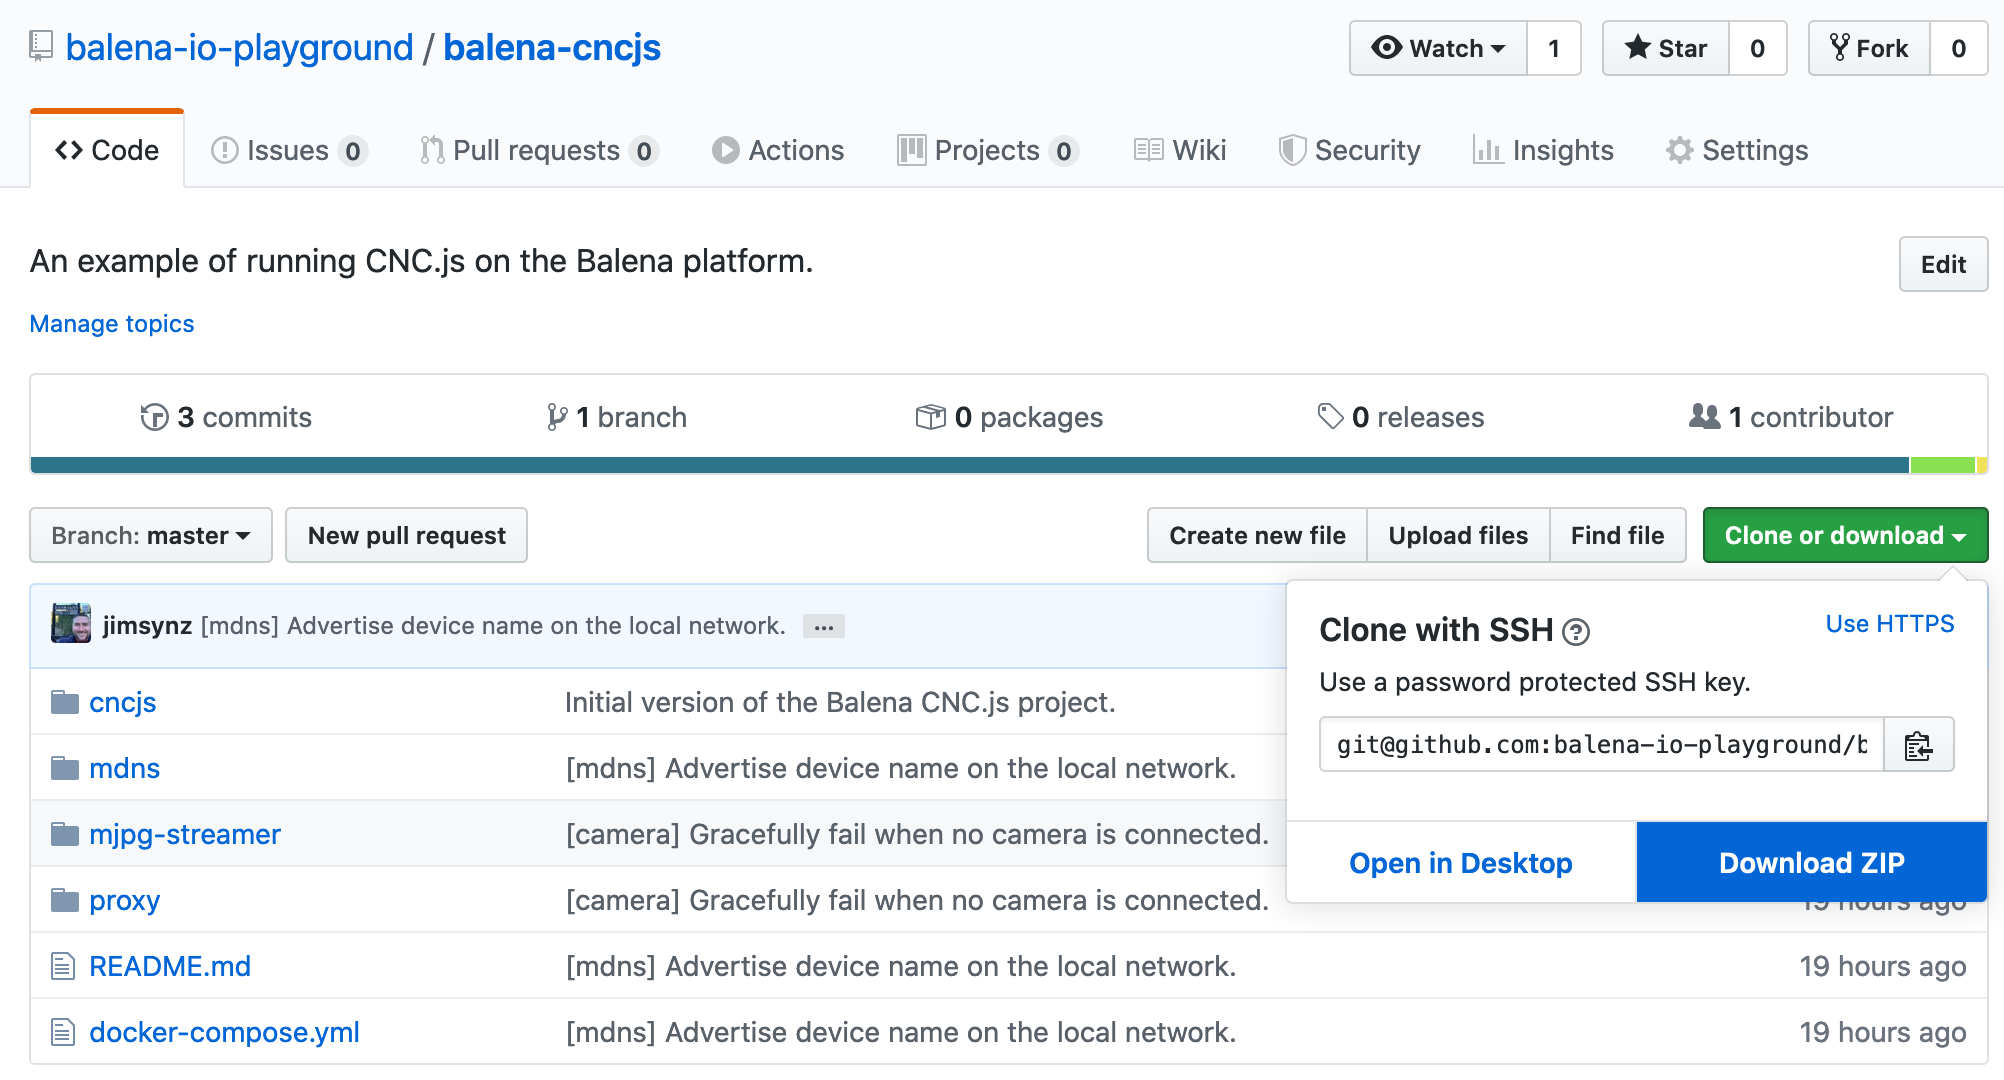 Clone or download the balena-cncjs repo however you choose.